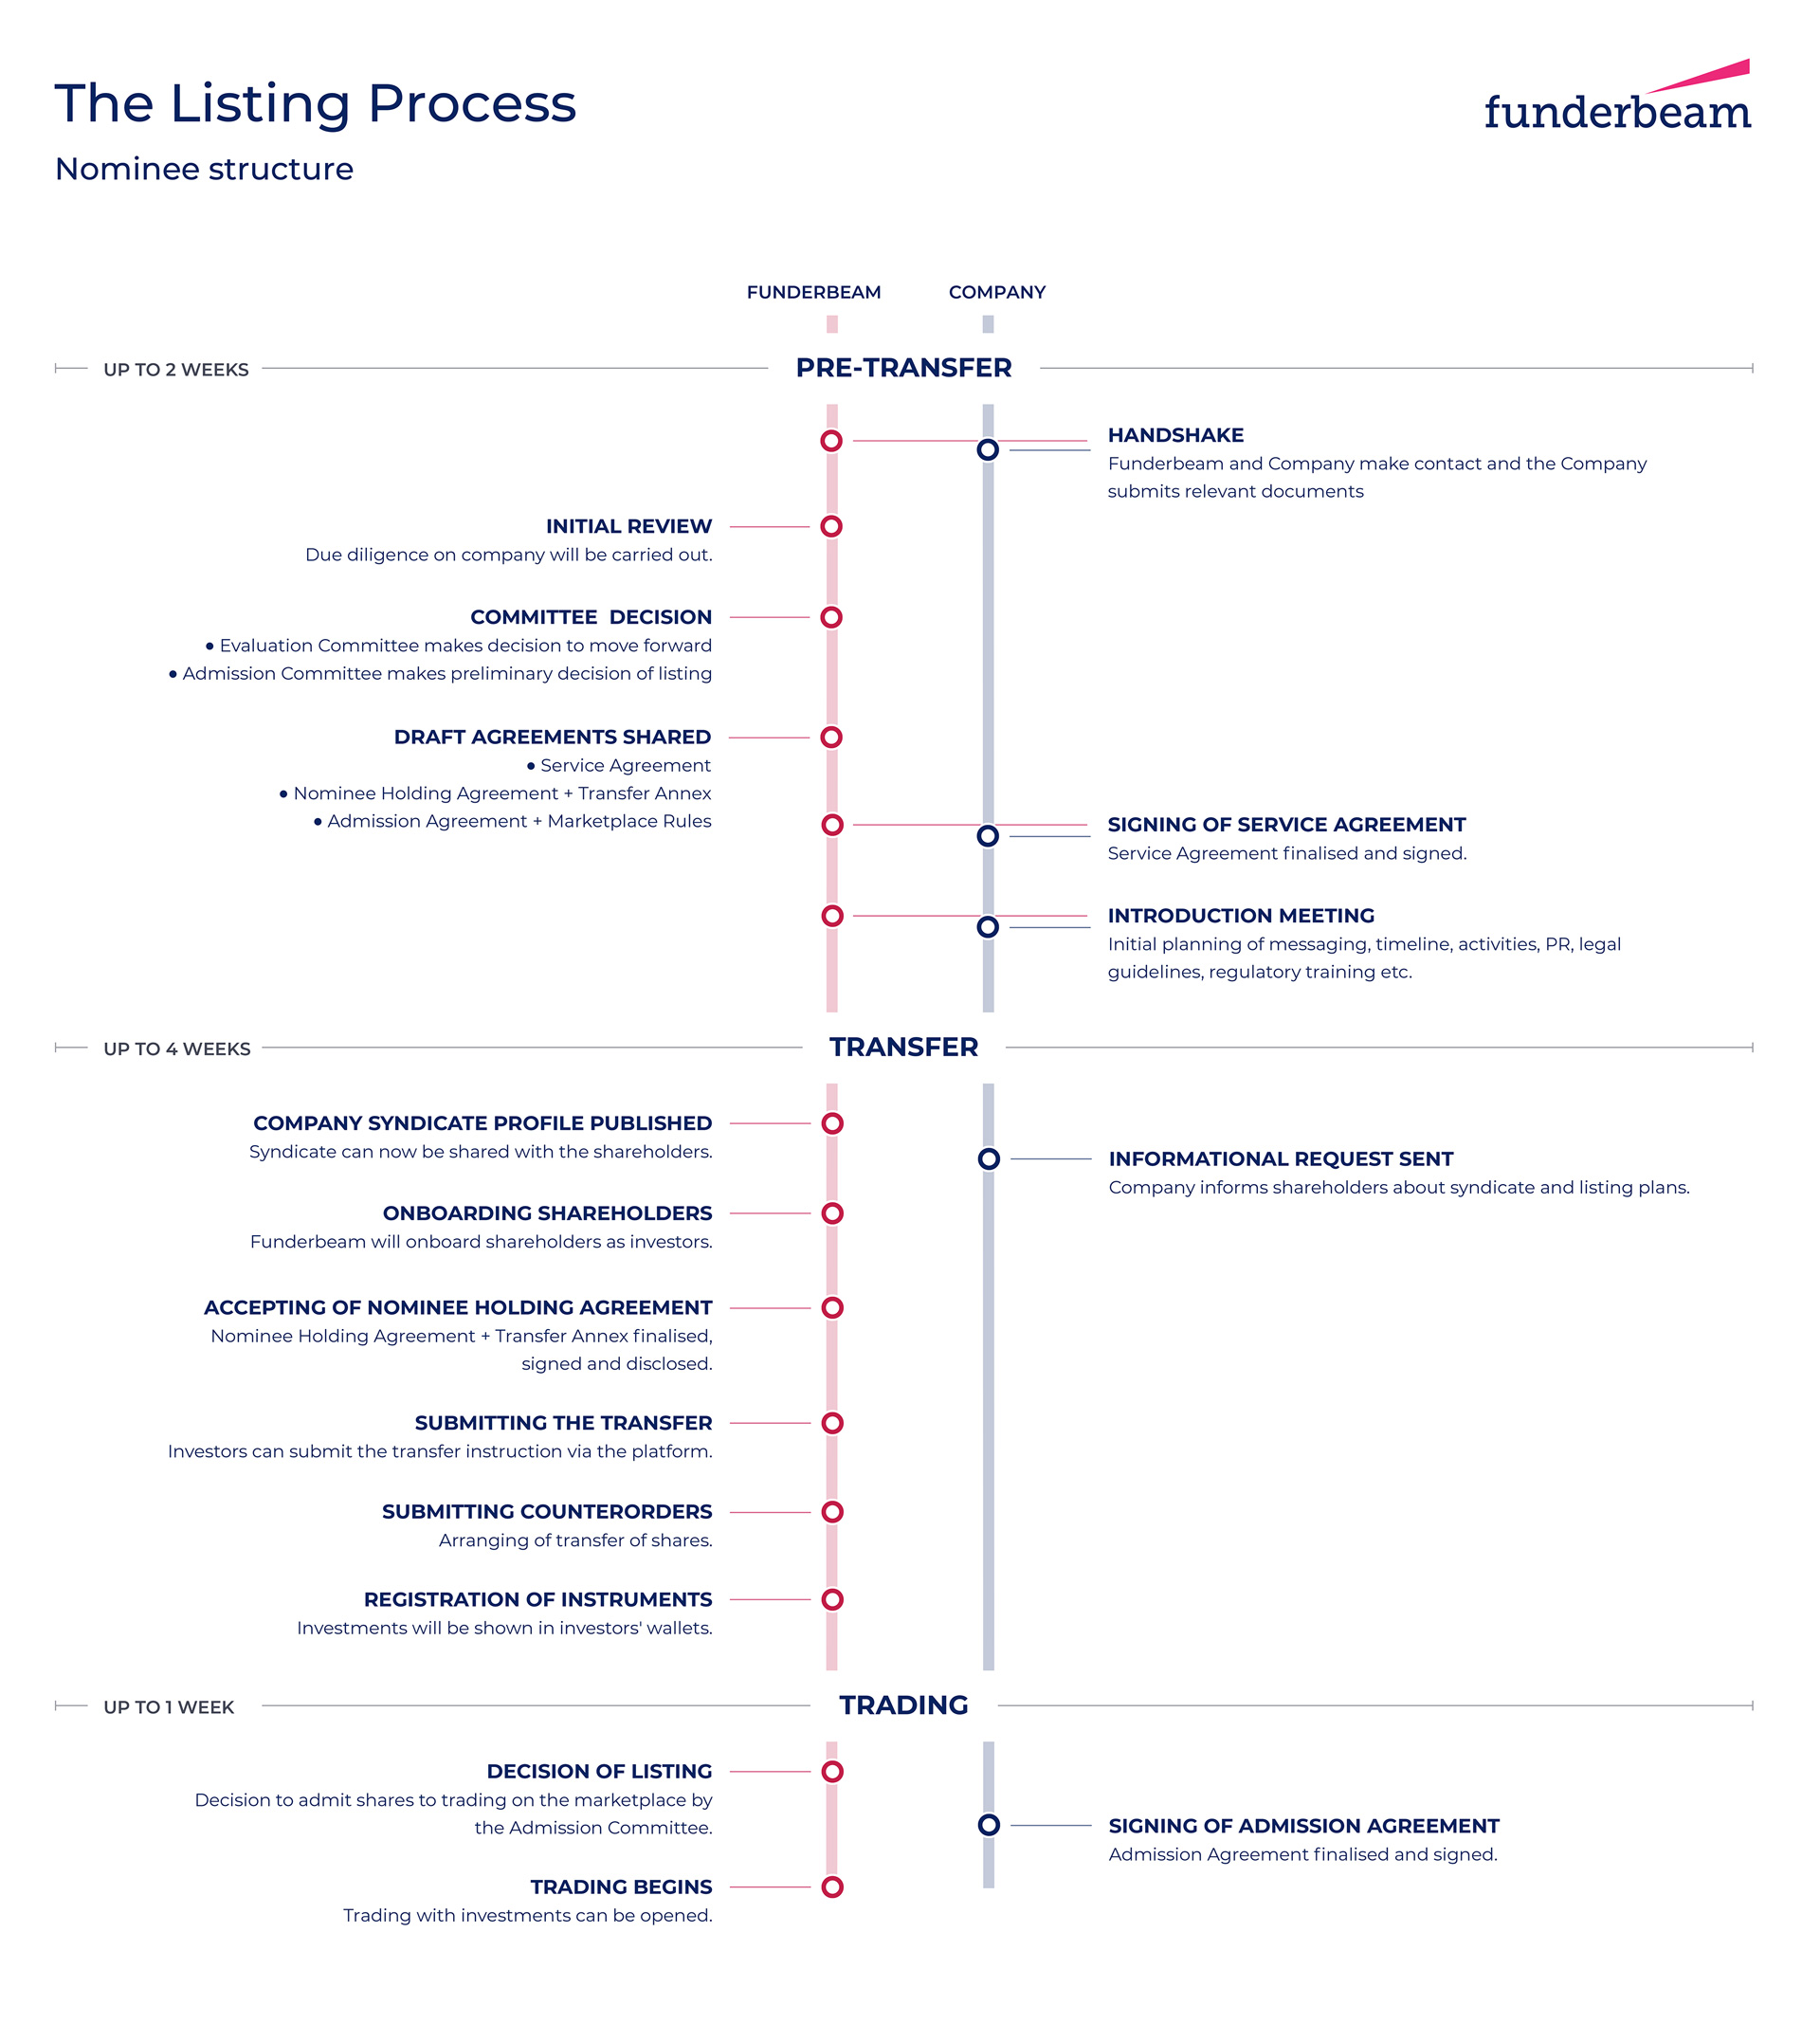 A diagram showing Funderbeam Listing Process timeline